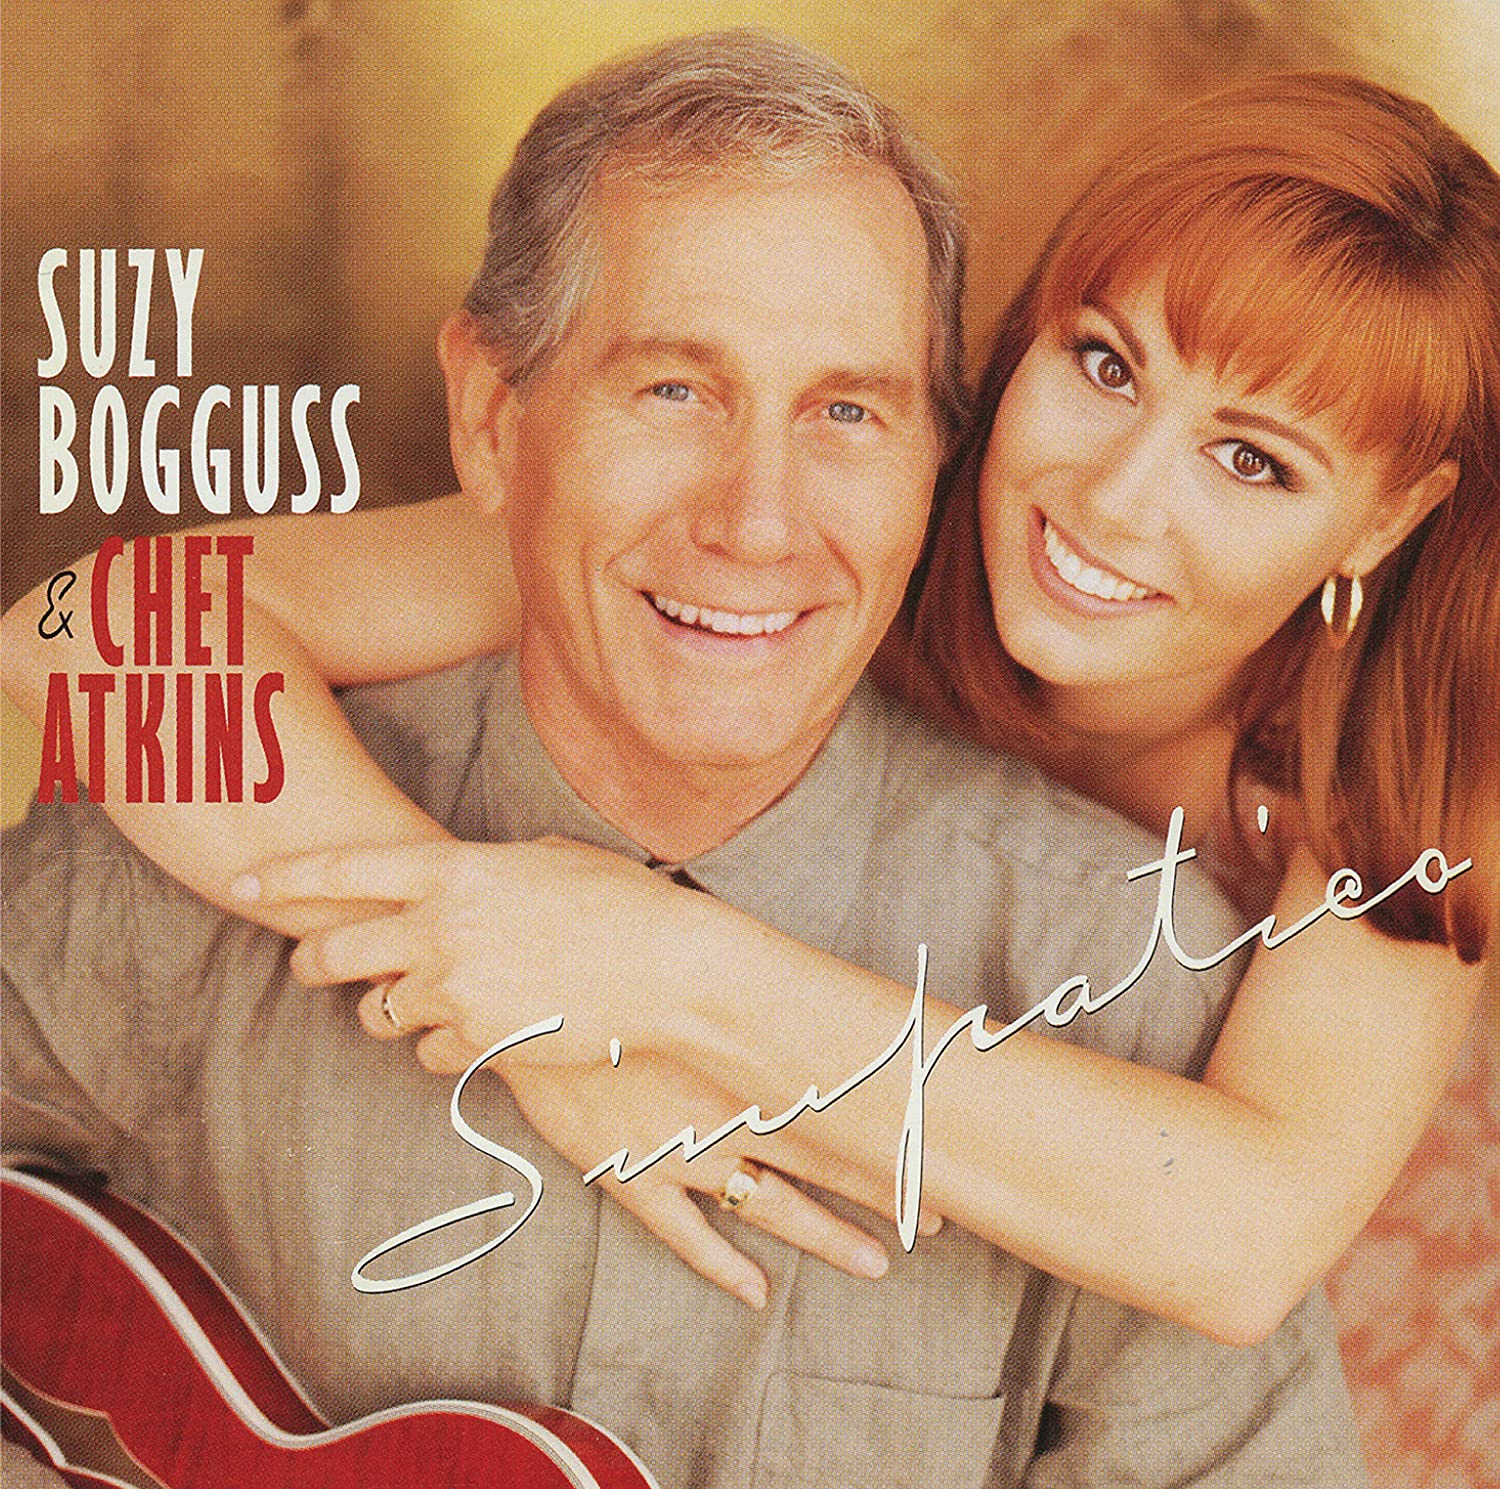 BOGGUSS, SUZY / ATKINS, CHET - Suzy Bogguss and Chet Atkins: Simpatico -  Amazon.com Music